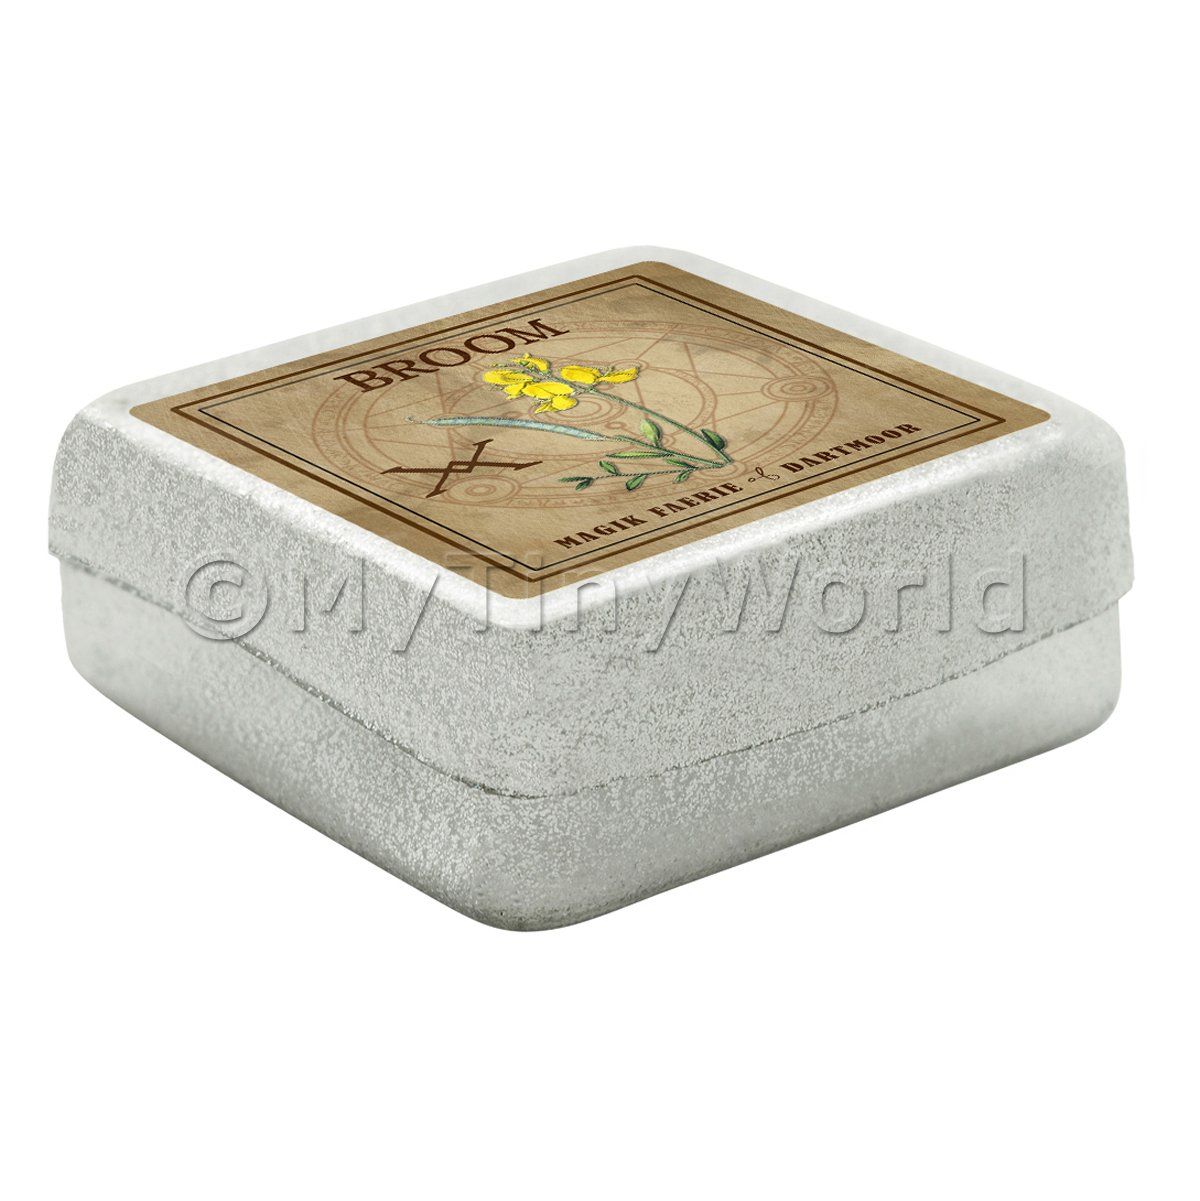 Dolls House Herbalist/Apothecary Broom Square Herb Box